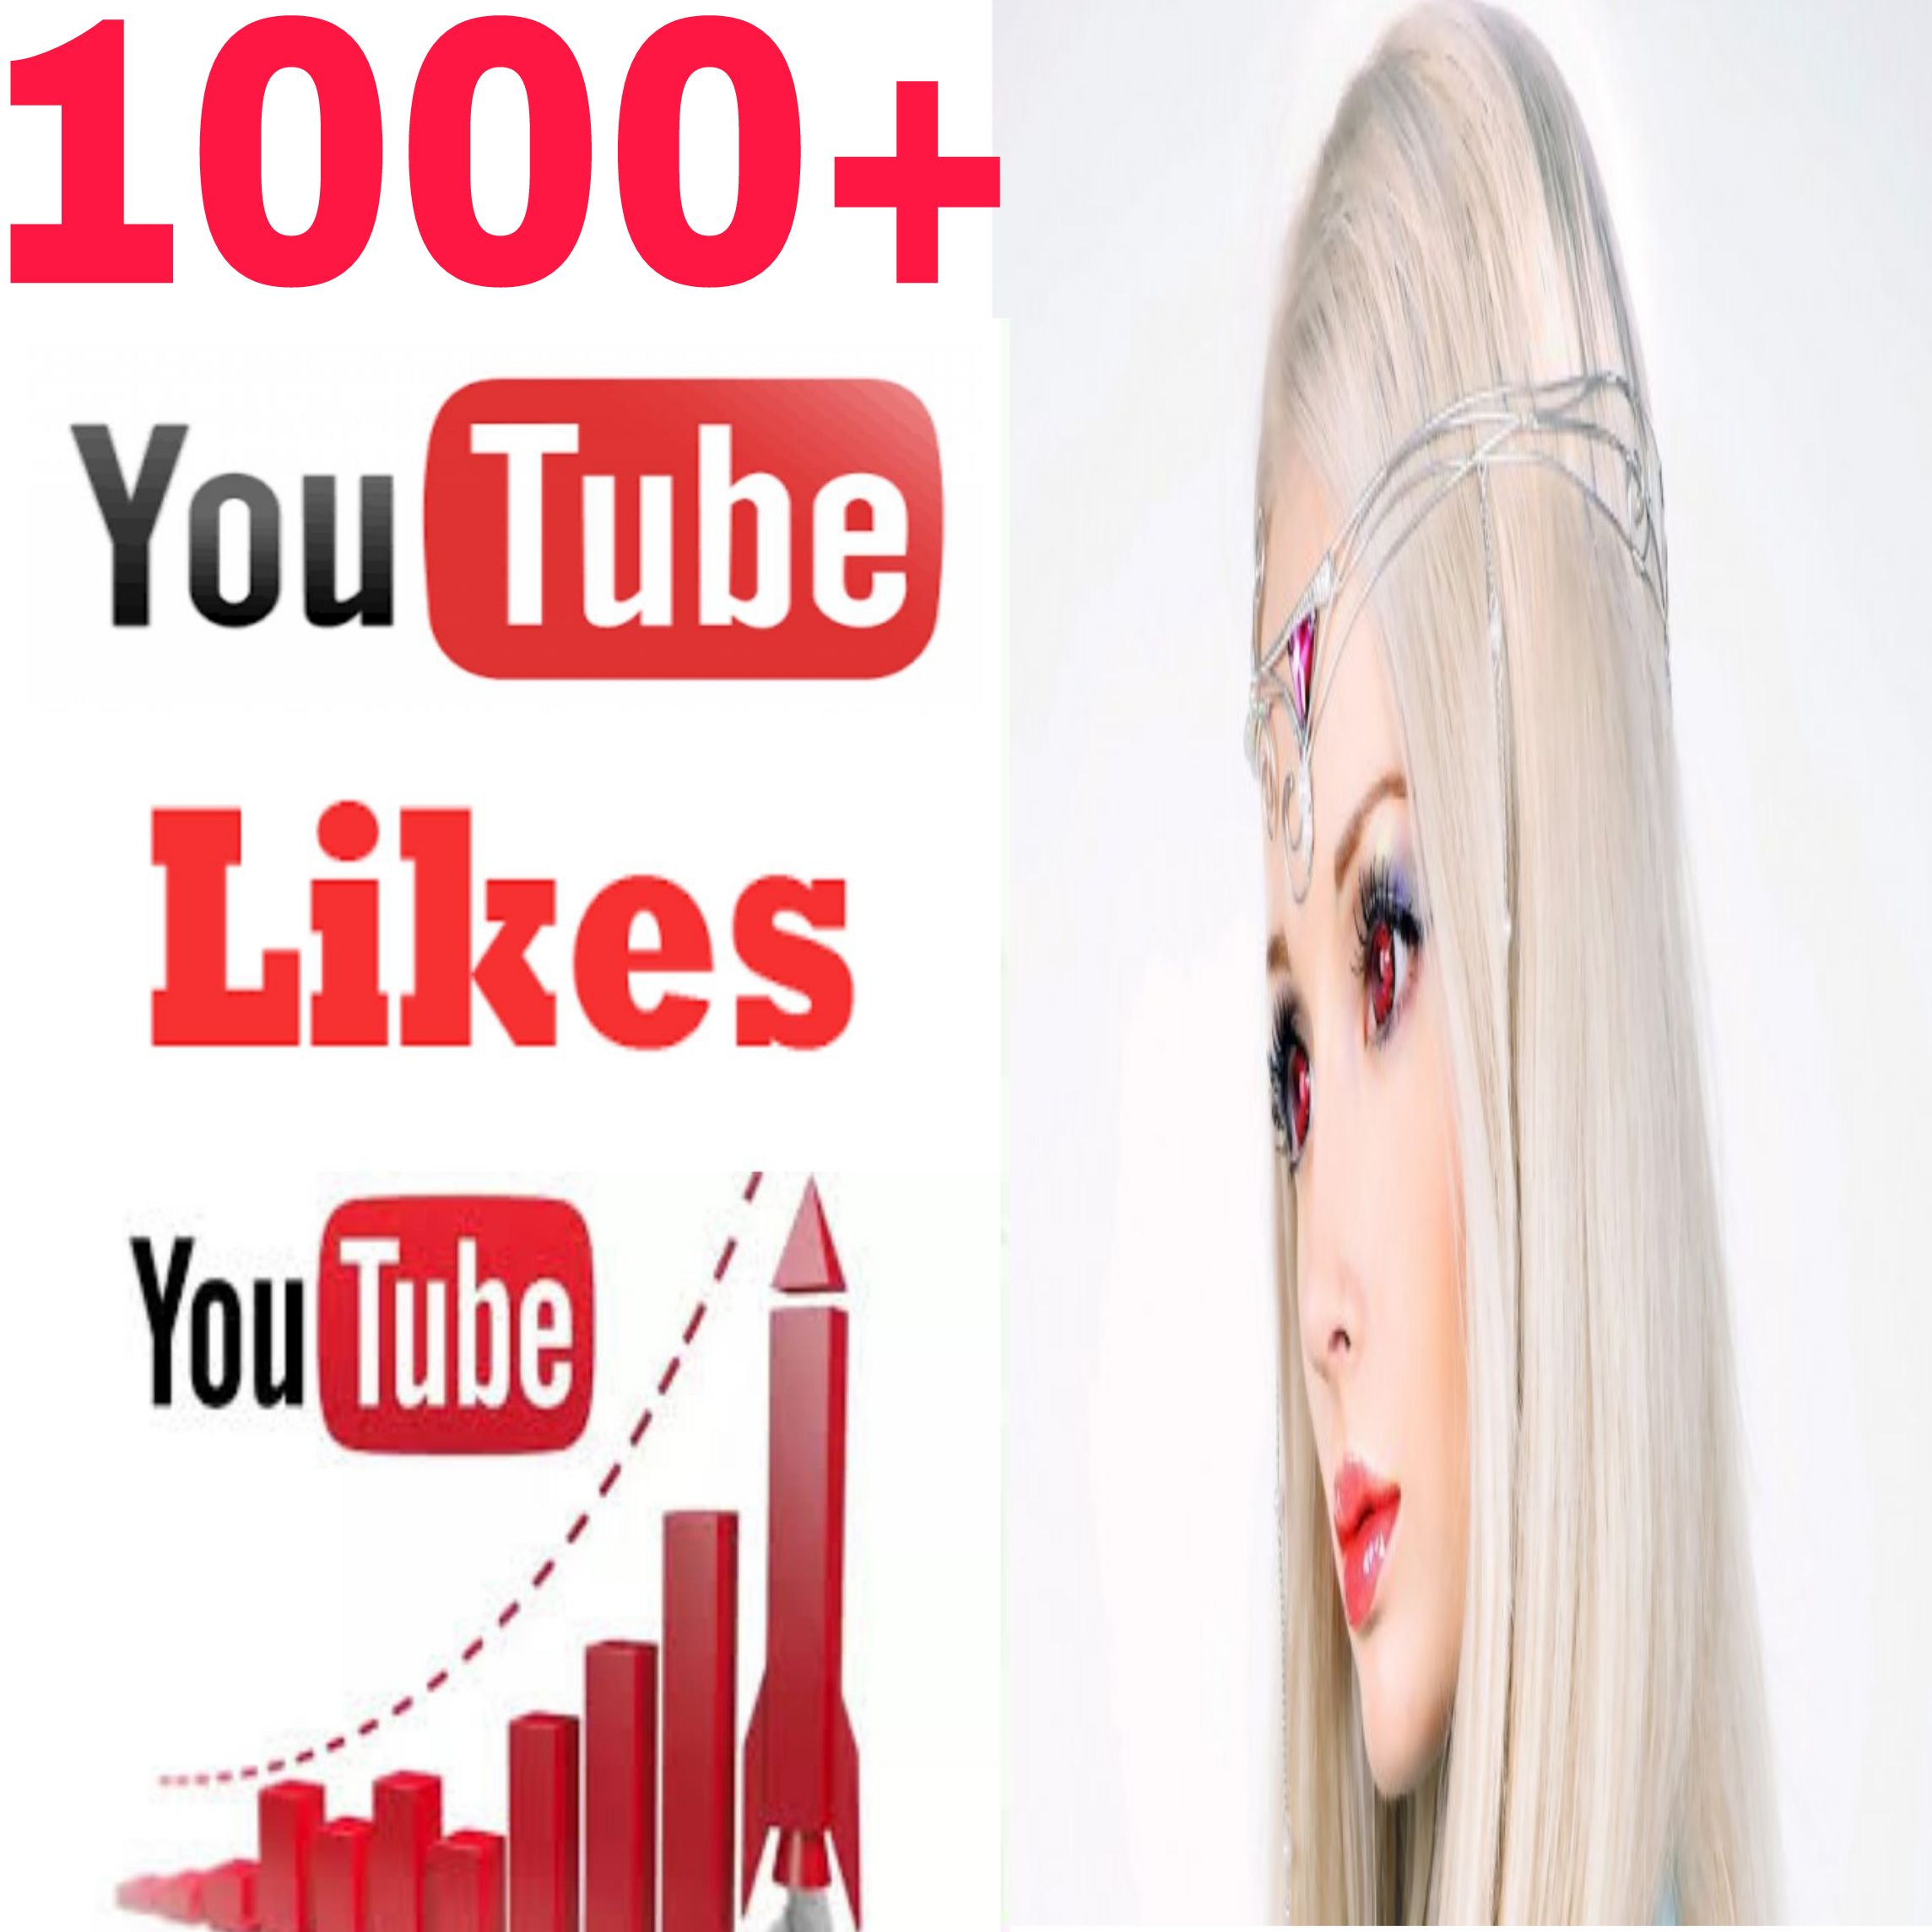 Special offer 1000+ Non Drop yt video likes very fast in 8-24 hours